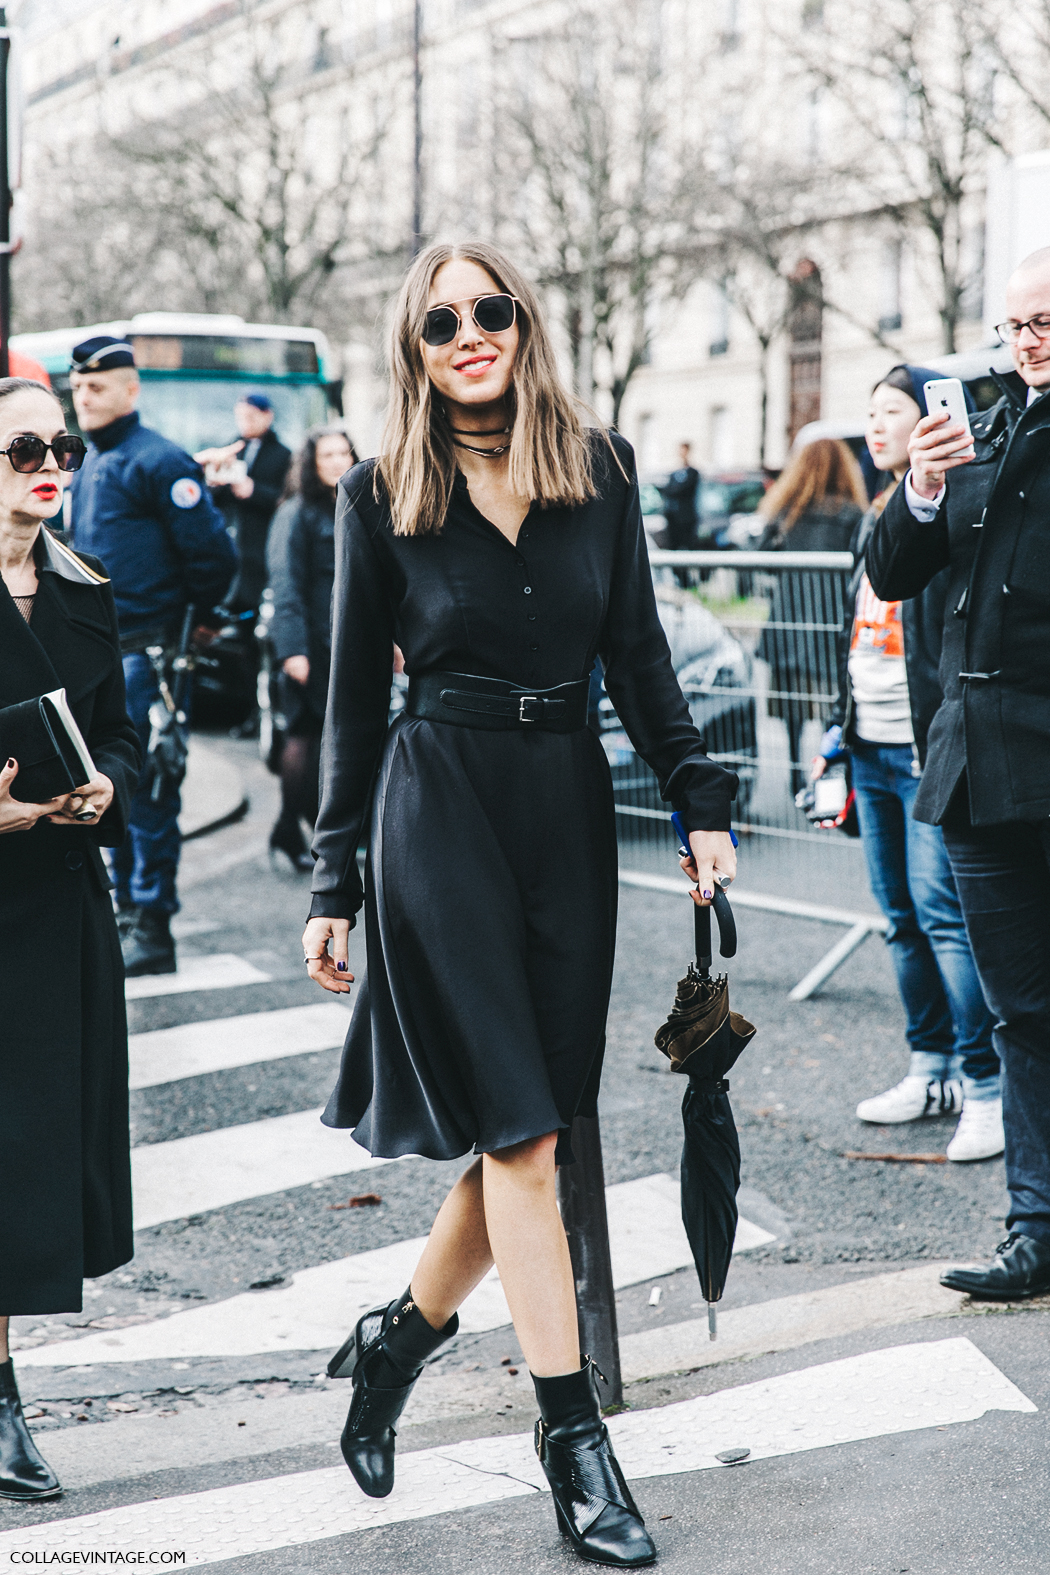 This killer black on black outfit will guarantee you the attention of everyone you pass! Combining a belted shirt dress with patent leather ankle boots and authentic retro shades, this model has nailed the trend. Via Collagevintage. Brands not specified.